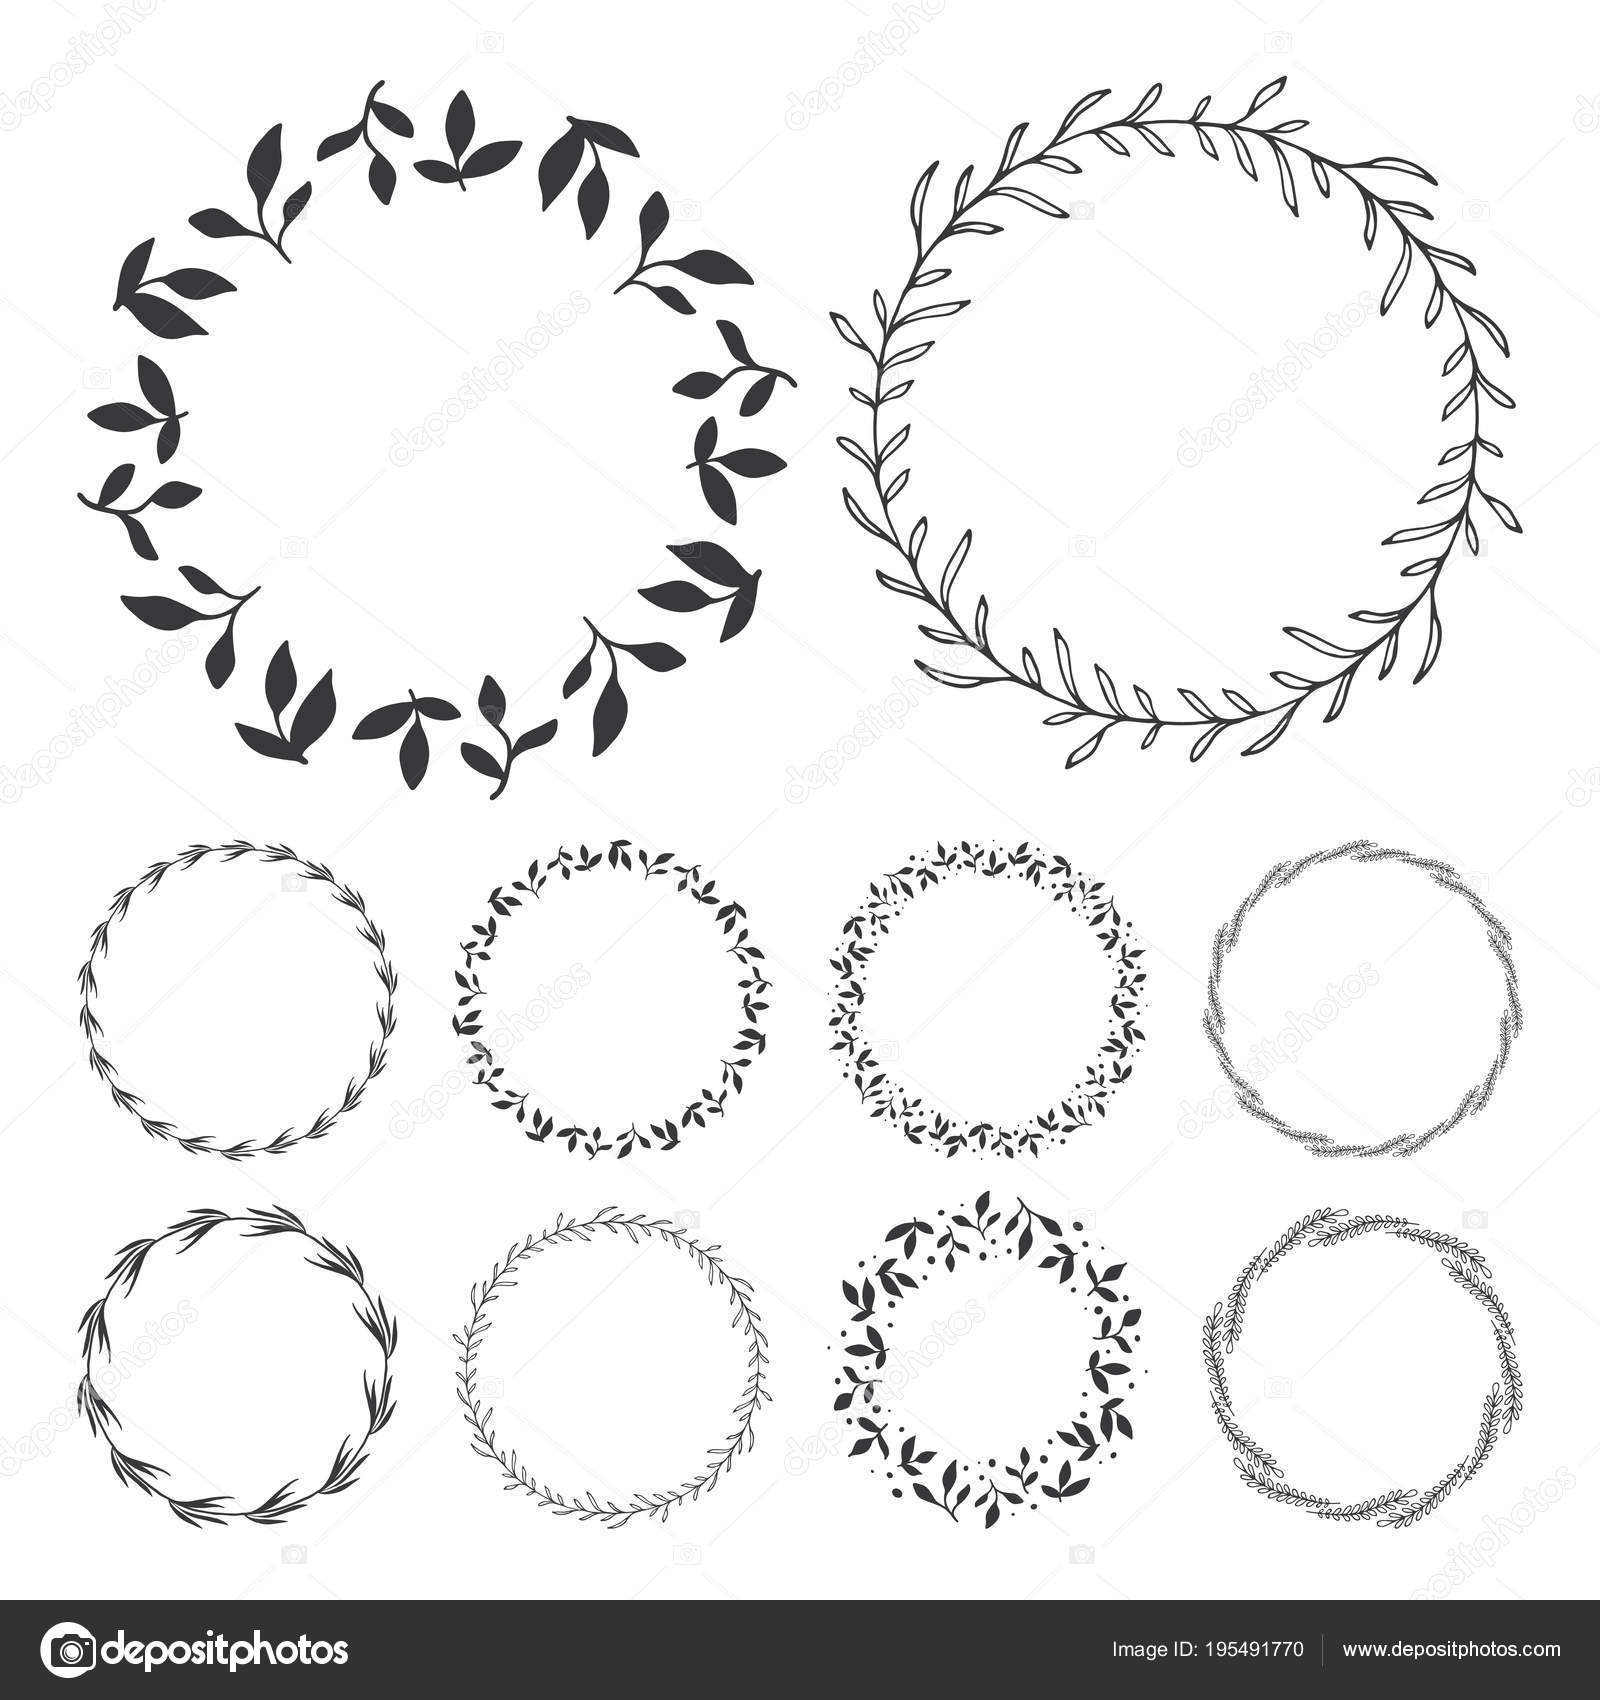 Clipart: floral wreaths.